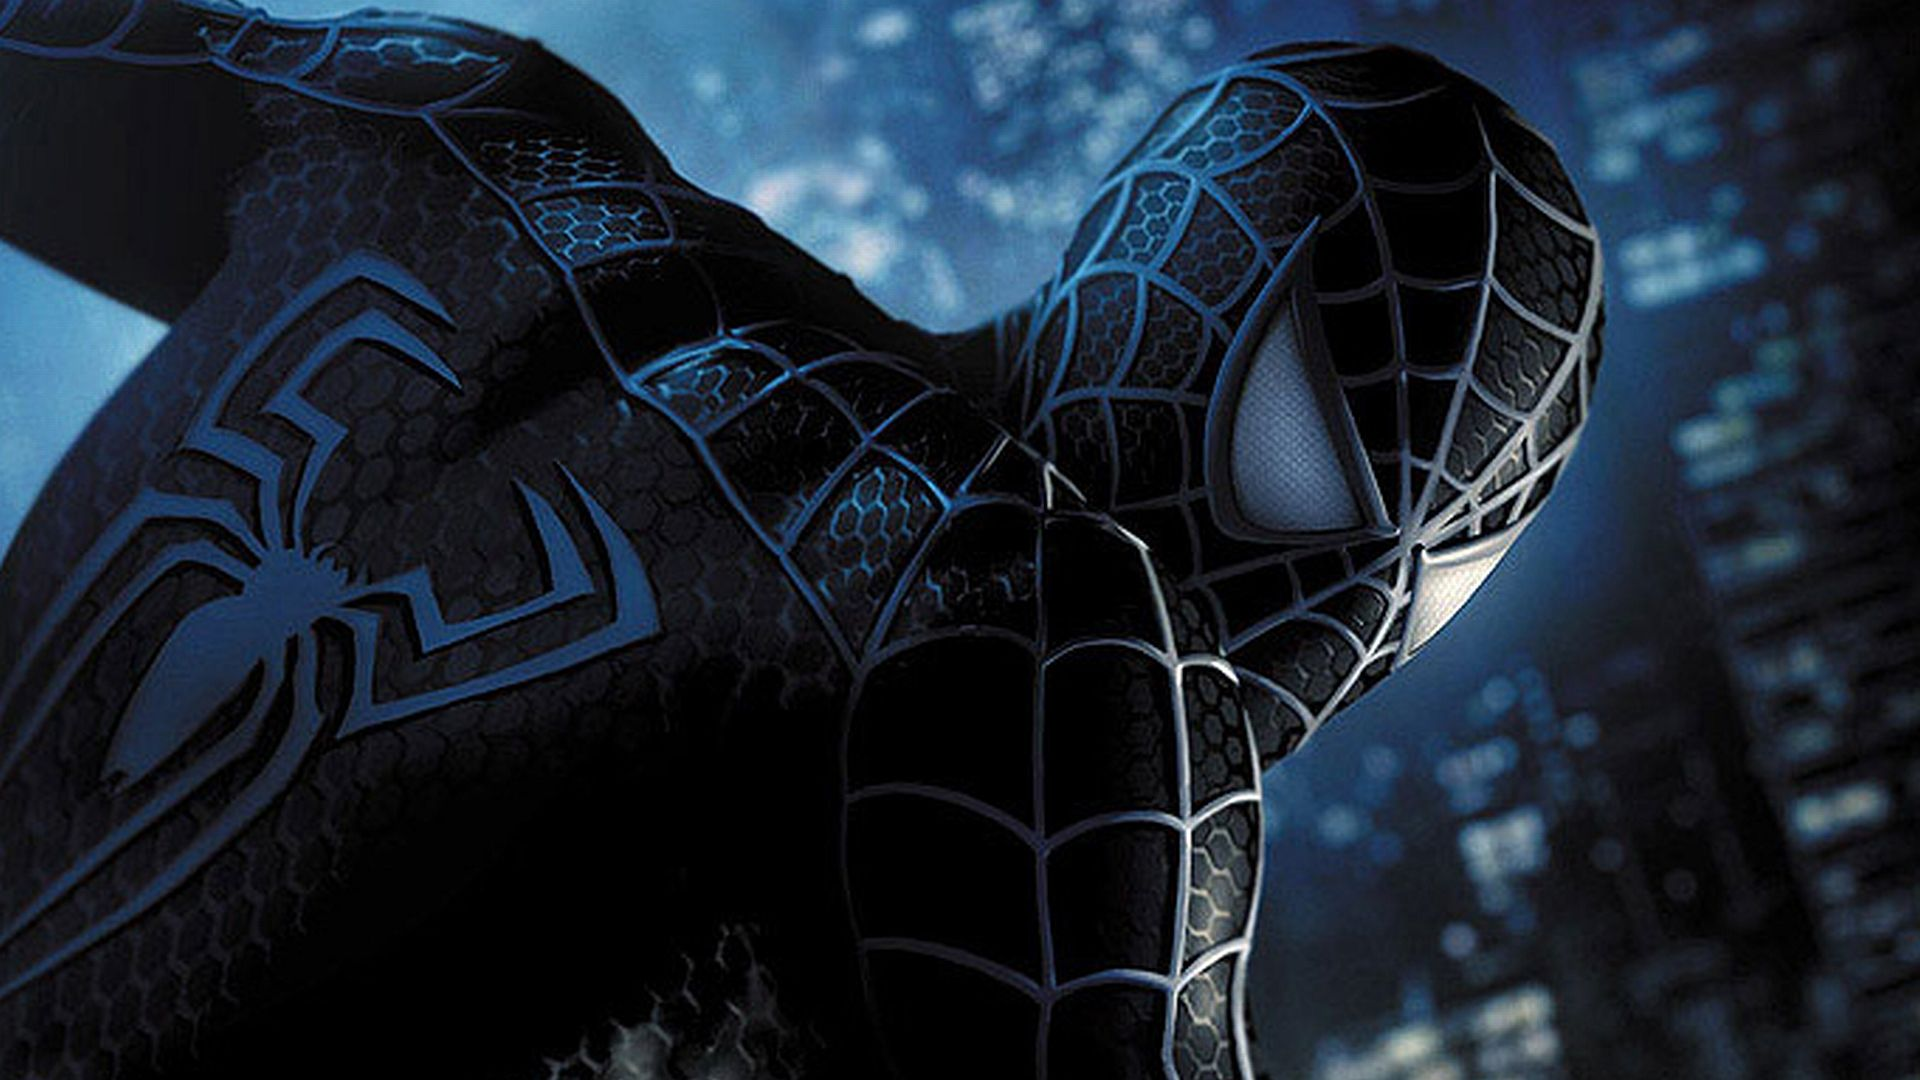 3d Spiderman 3 Images Wallpaper Hd Free Black Spiderman Spiderman Comic Spiderman 3 Wallpaper